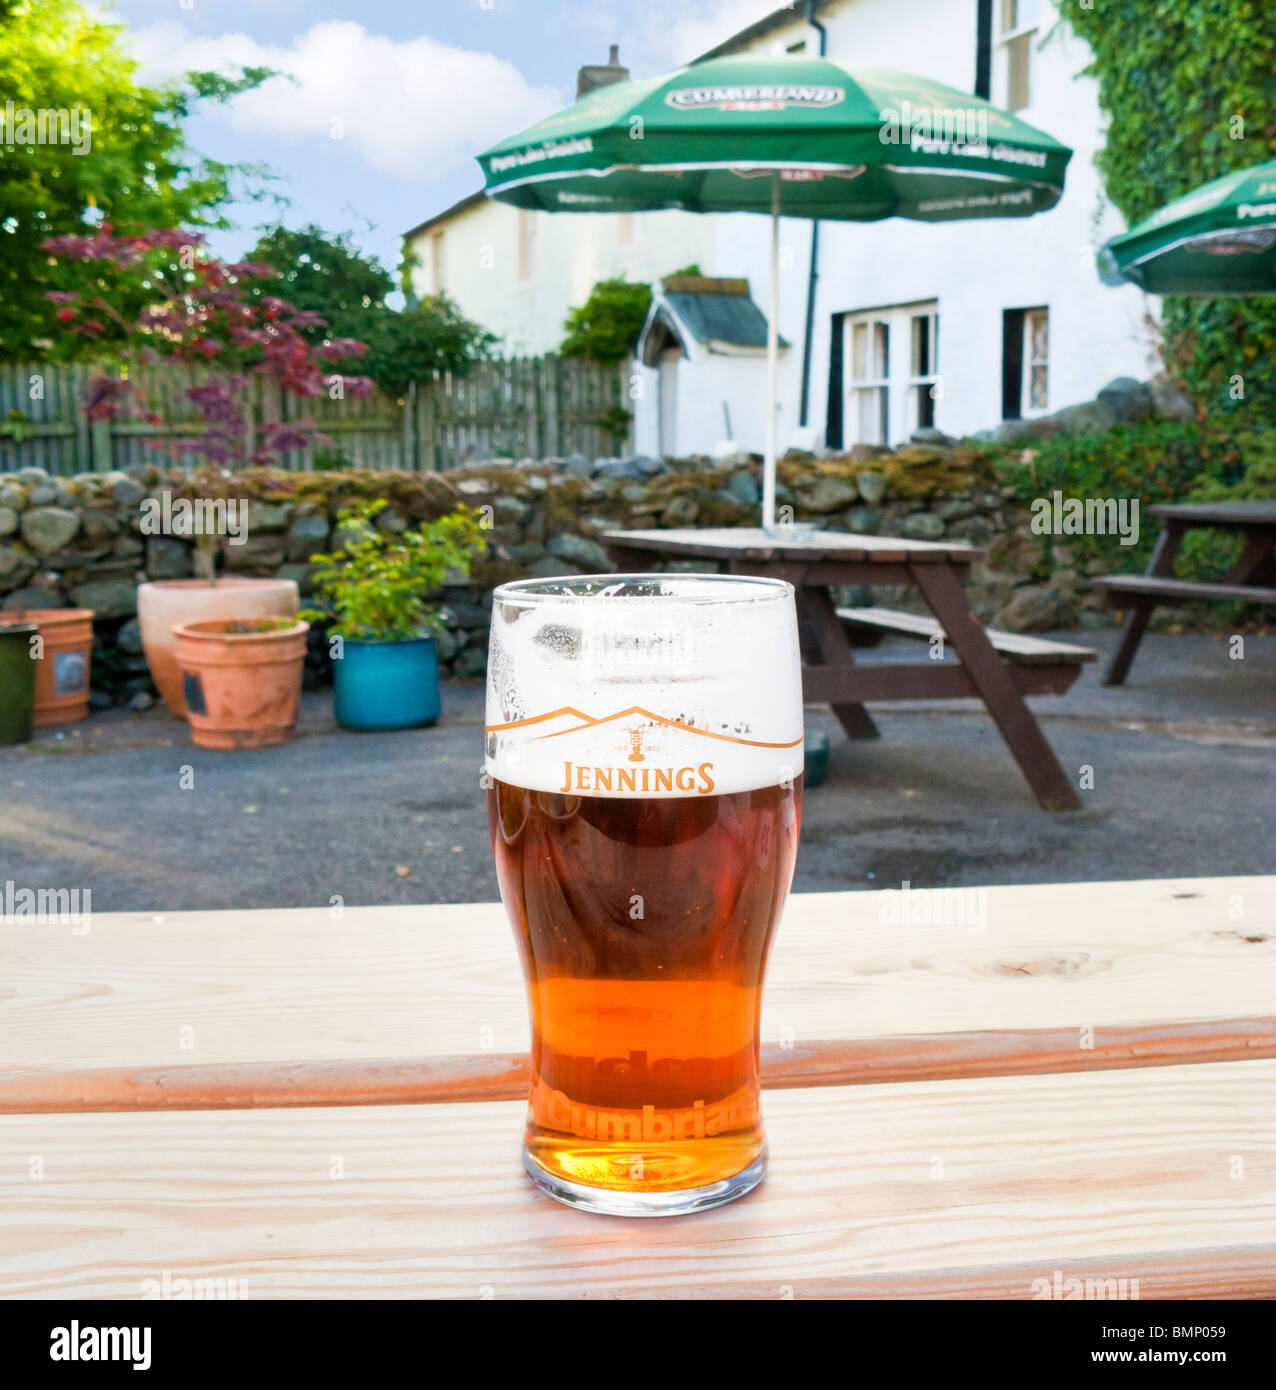 Pint of beer on a beer garden table in a pub in the Lake District, UK - Jennings Cumbrian ale - Stock Image